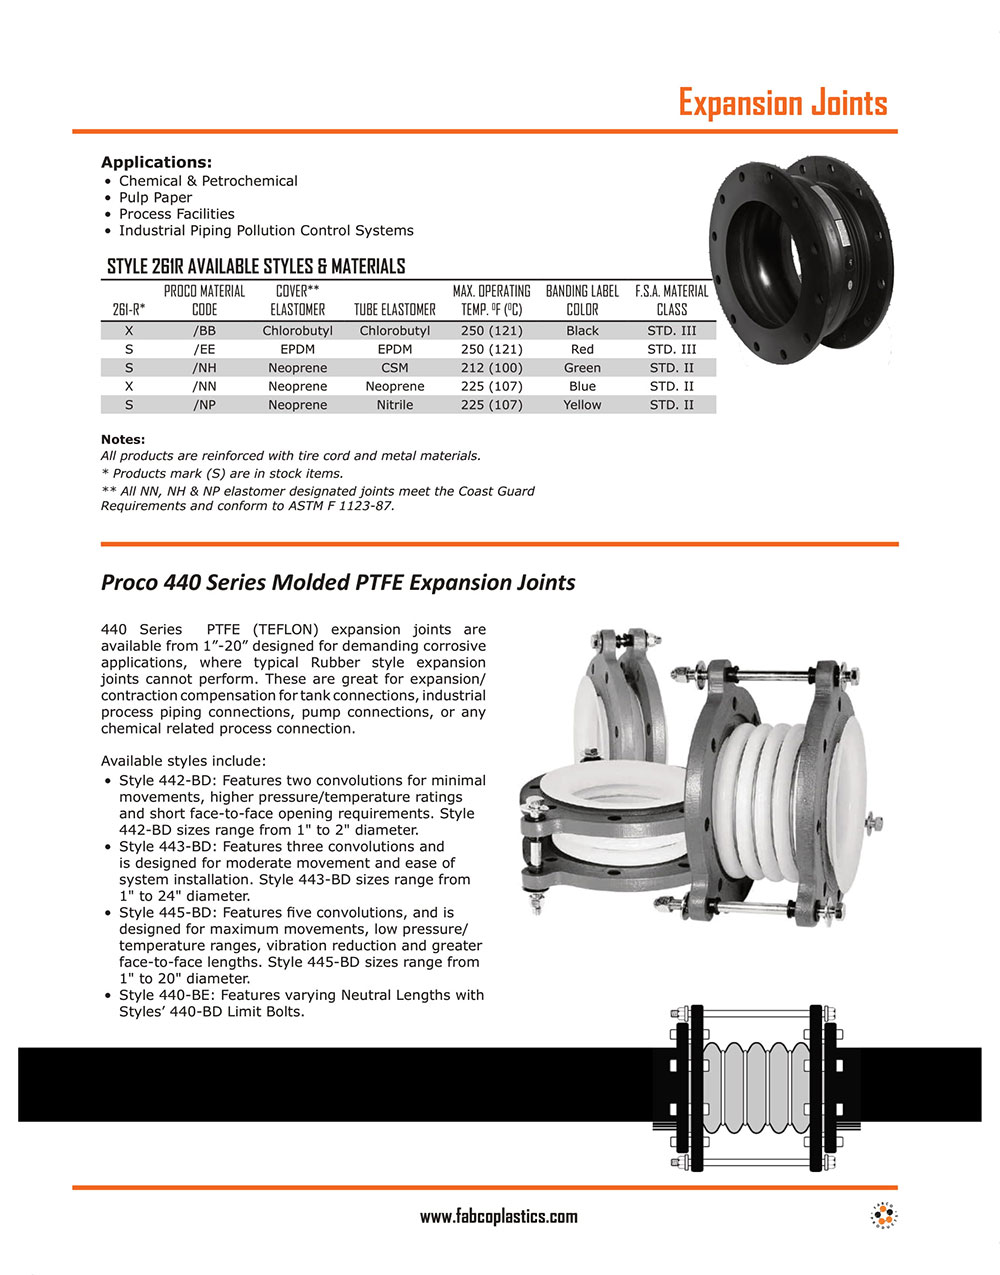 Saddles & Expansion Joints